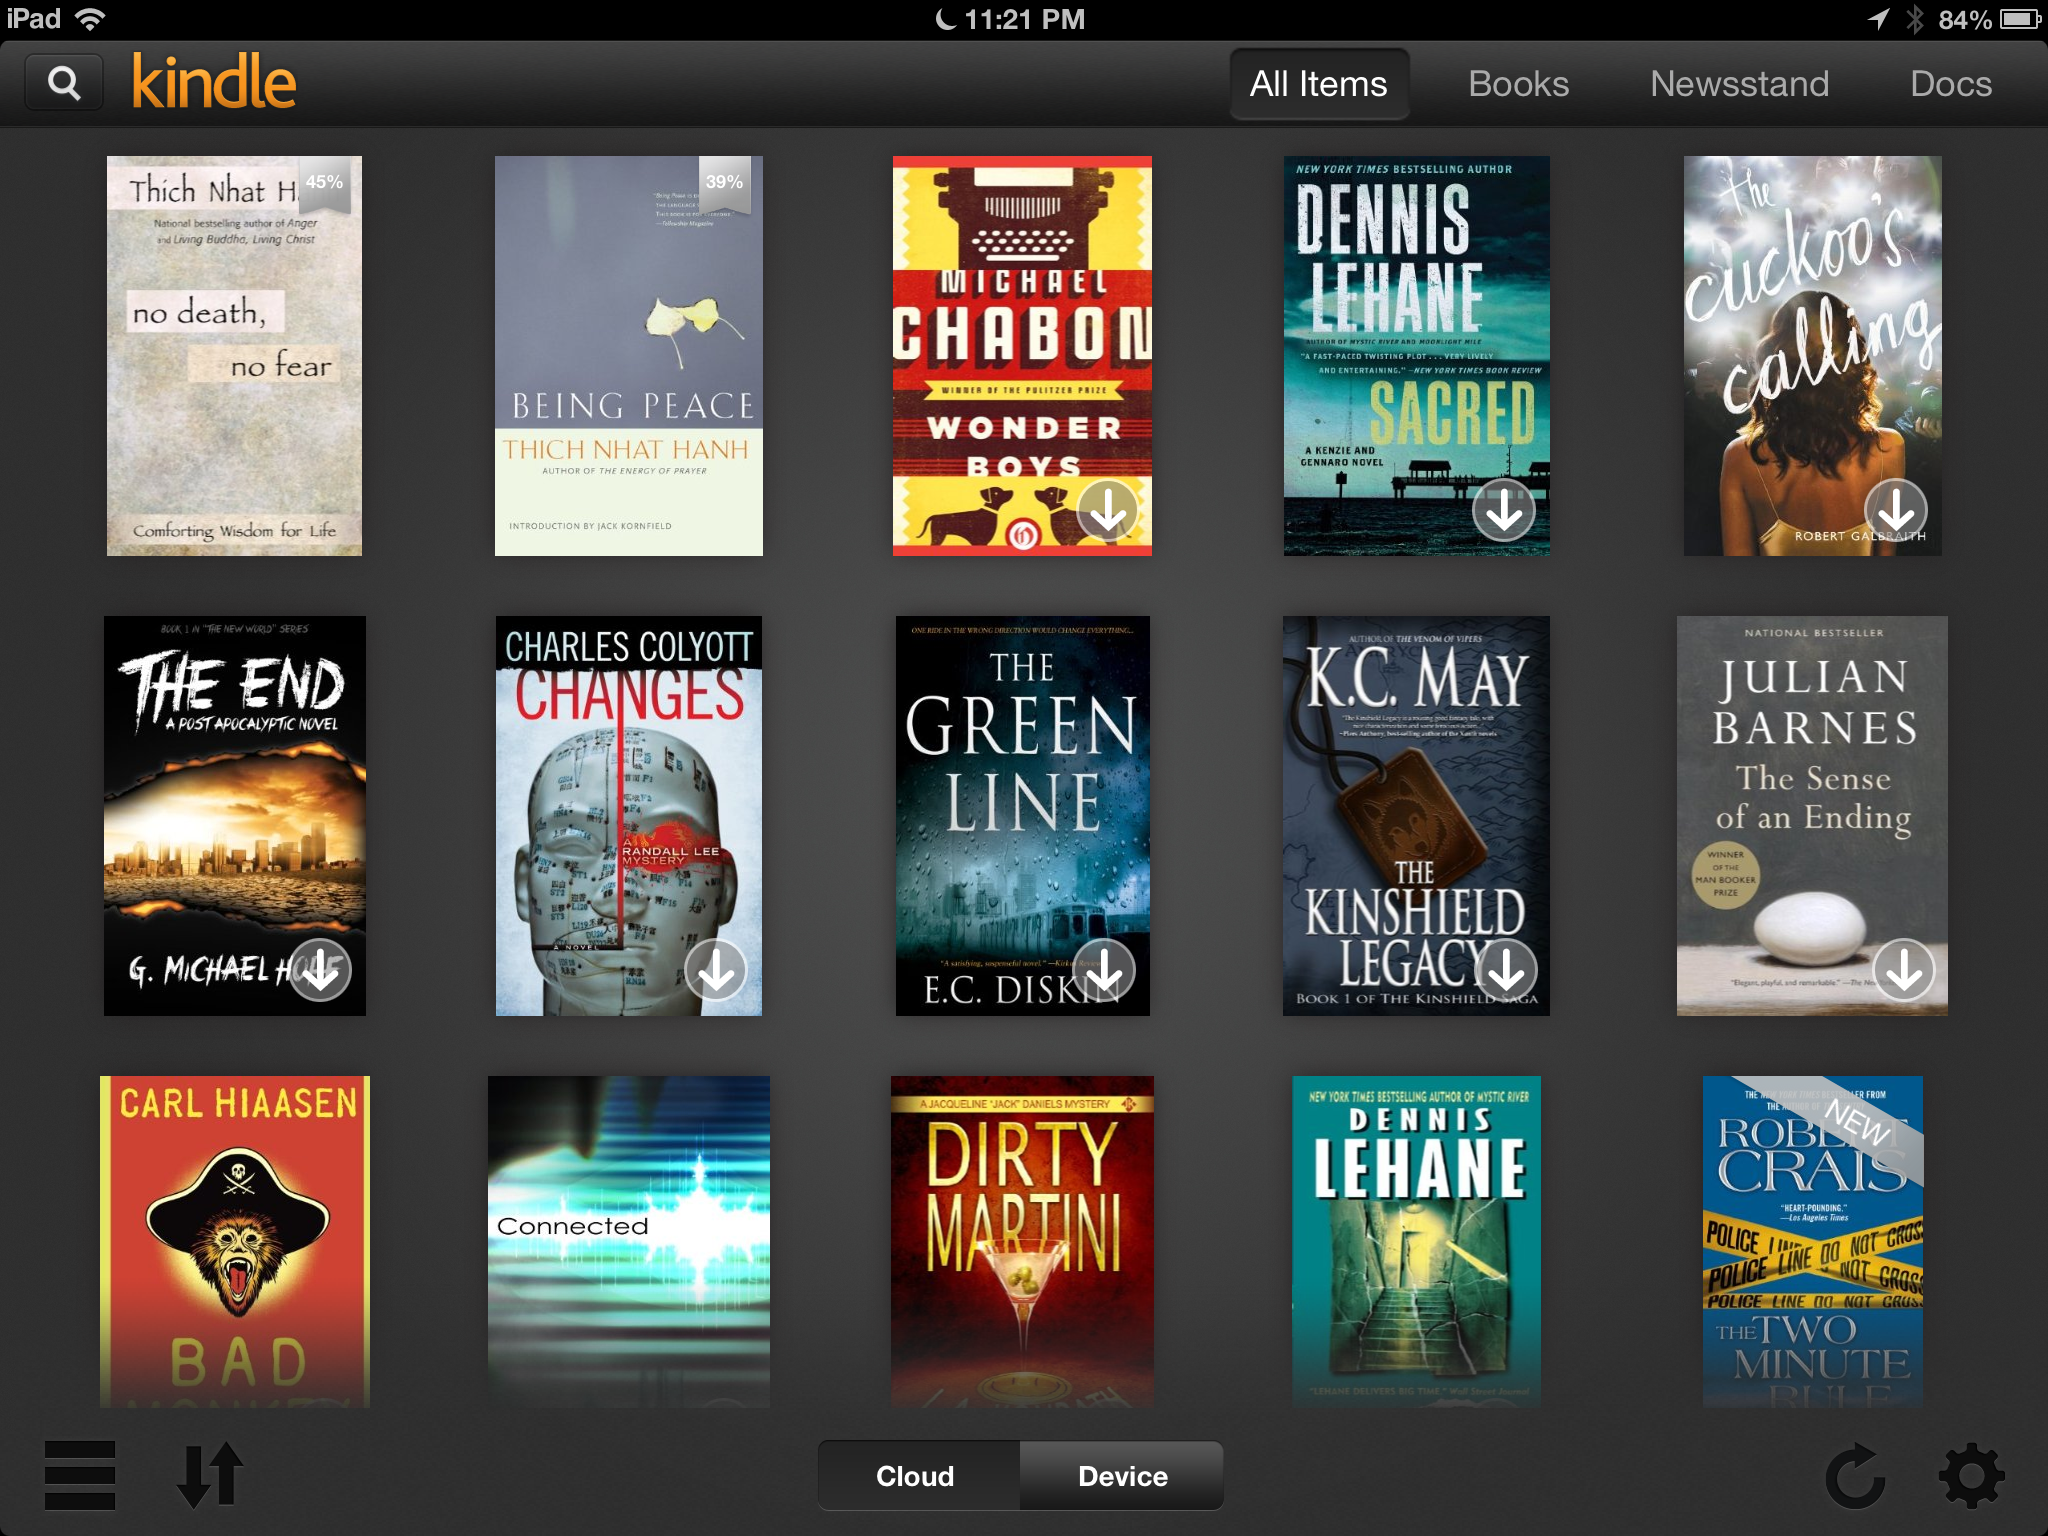 The 7 Best Ways to Get Free and Cheap Kindle Books